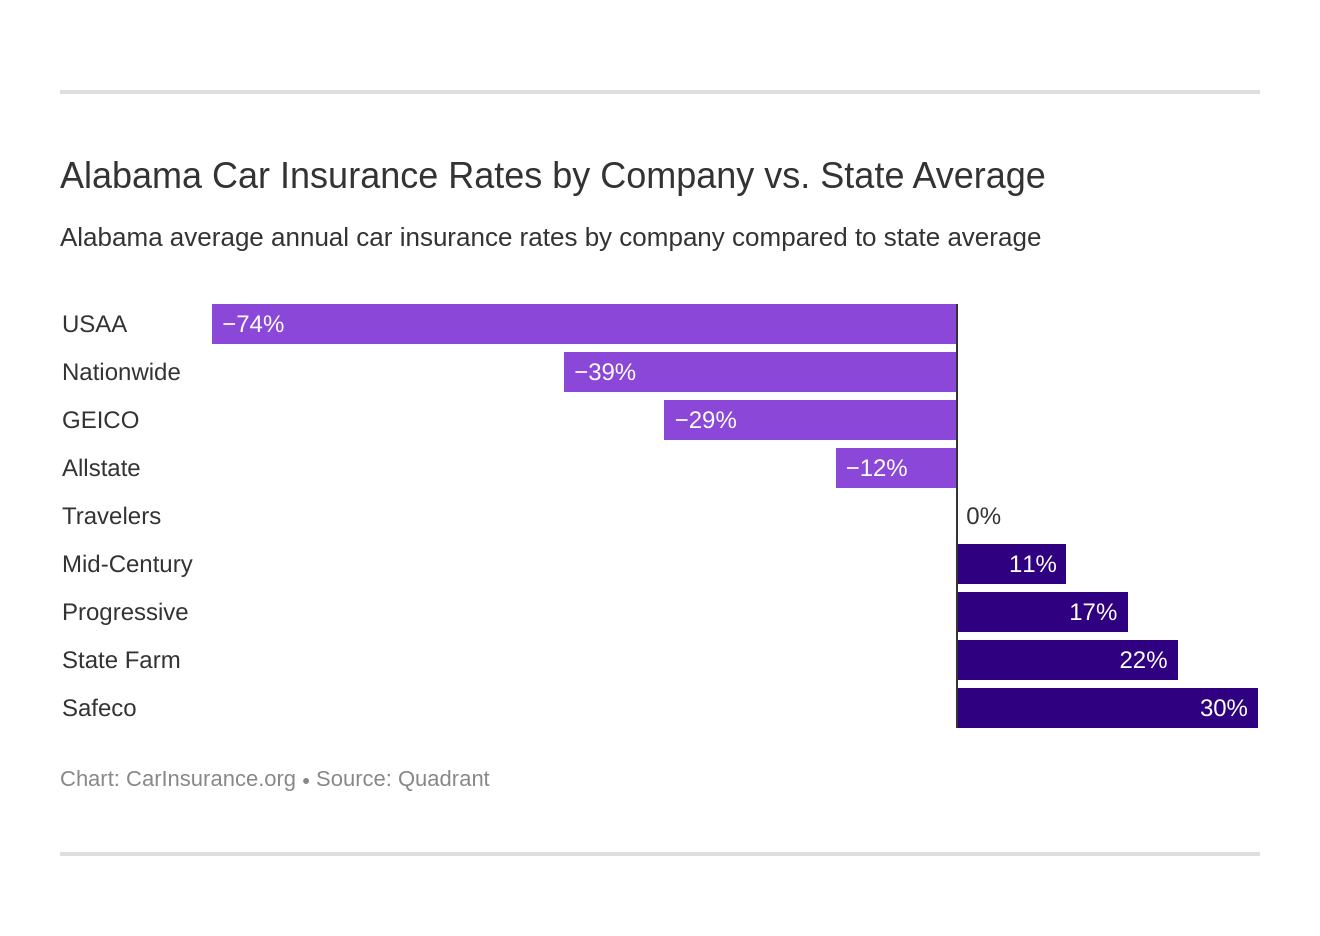 Alabama Car Insurance Rates by Company vs. State Average